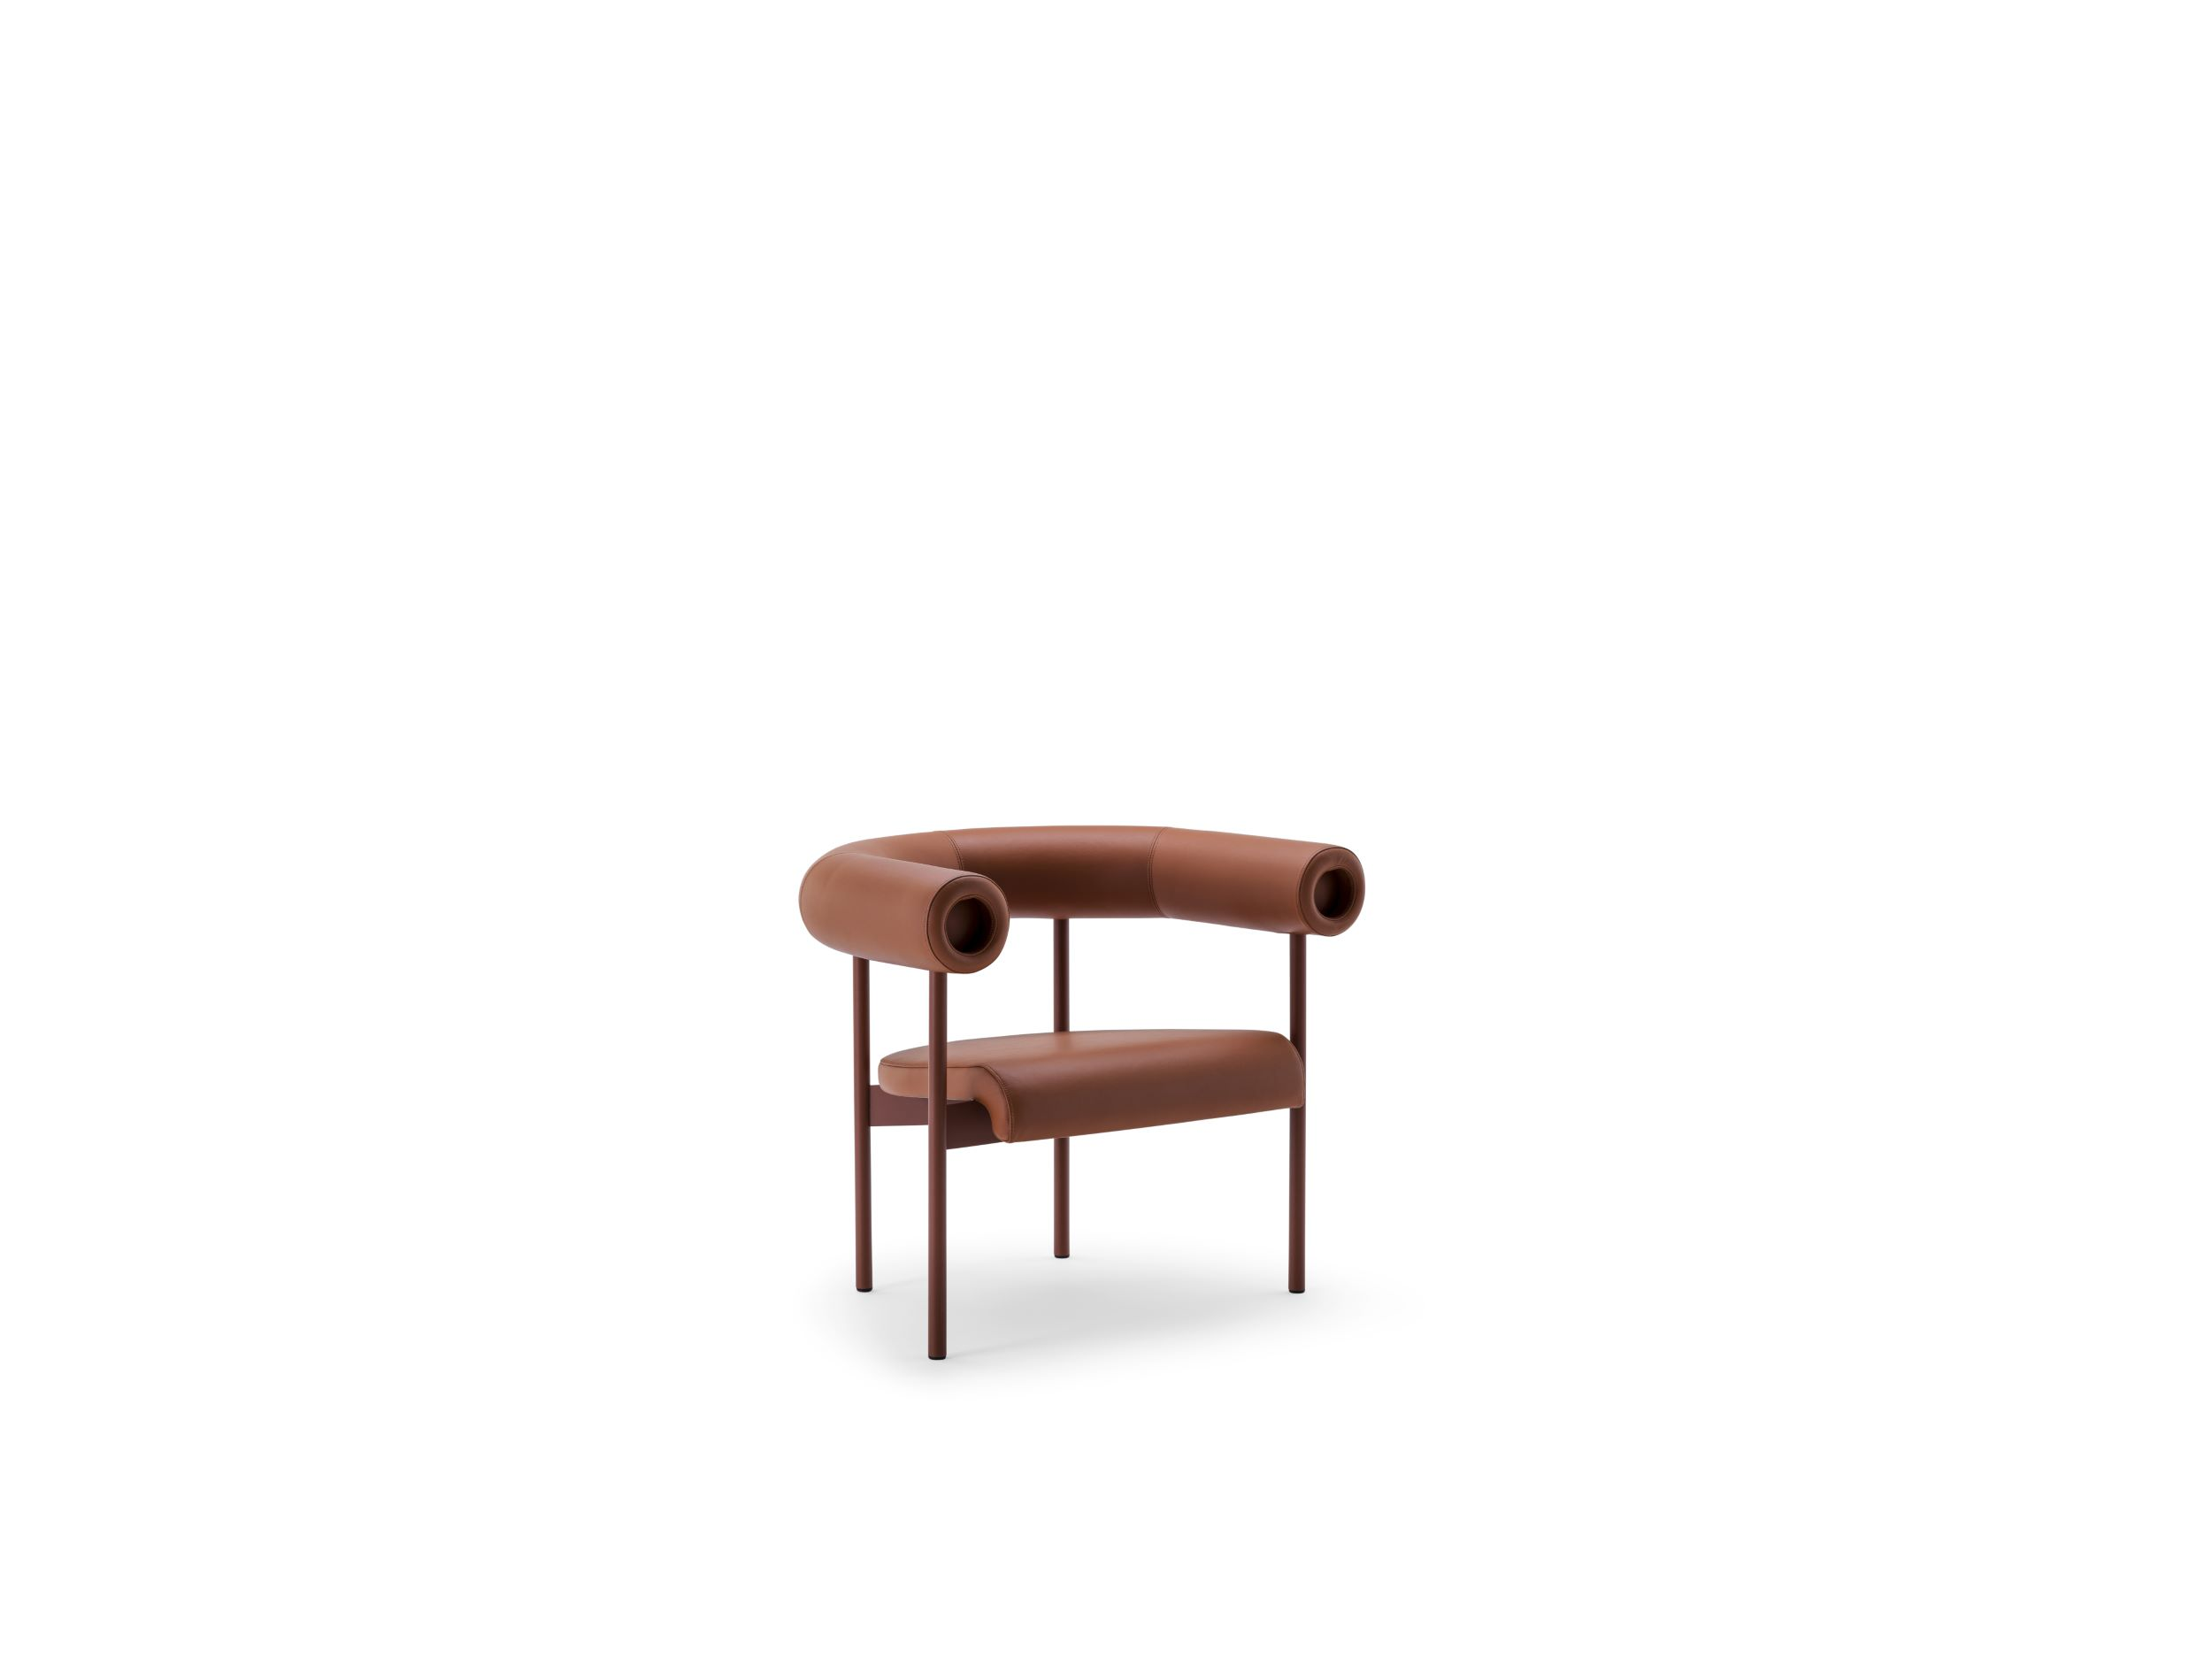 Font, Easy chair by Matti Klenell